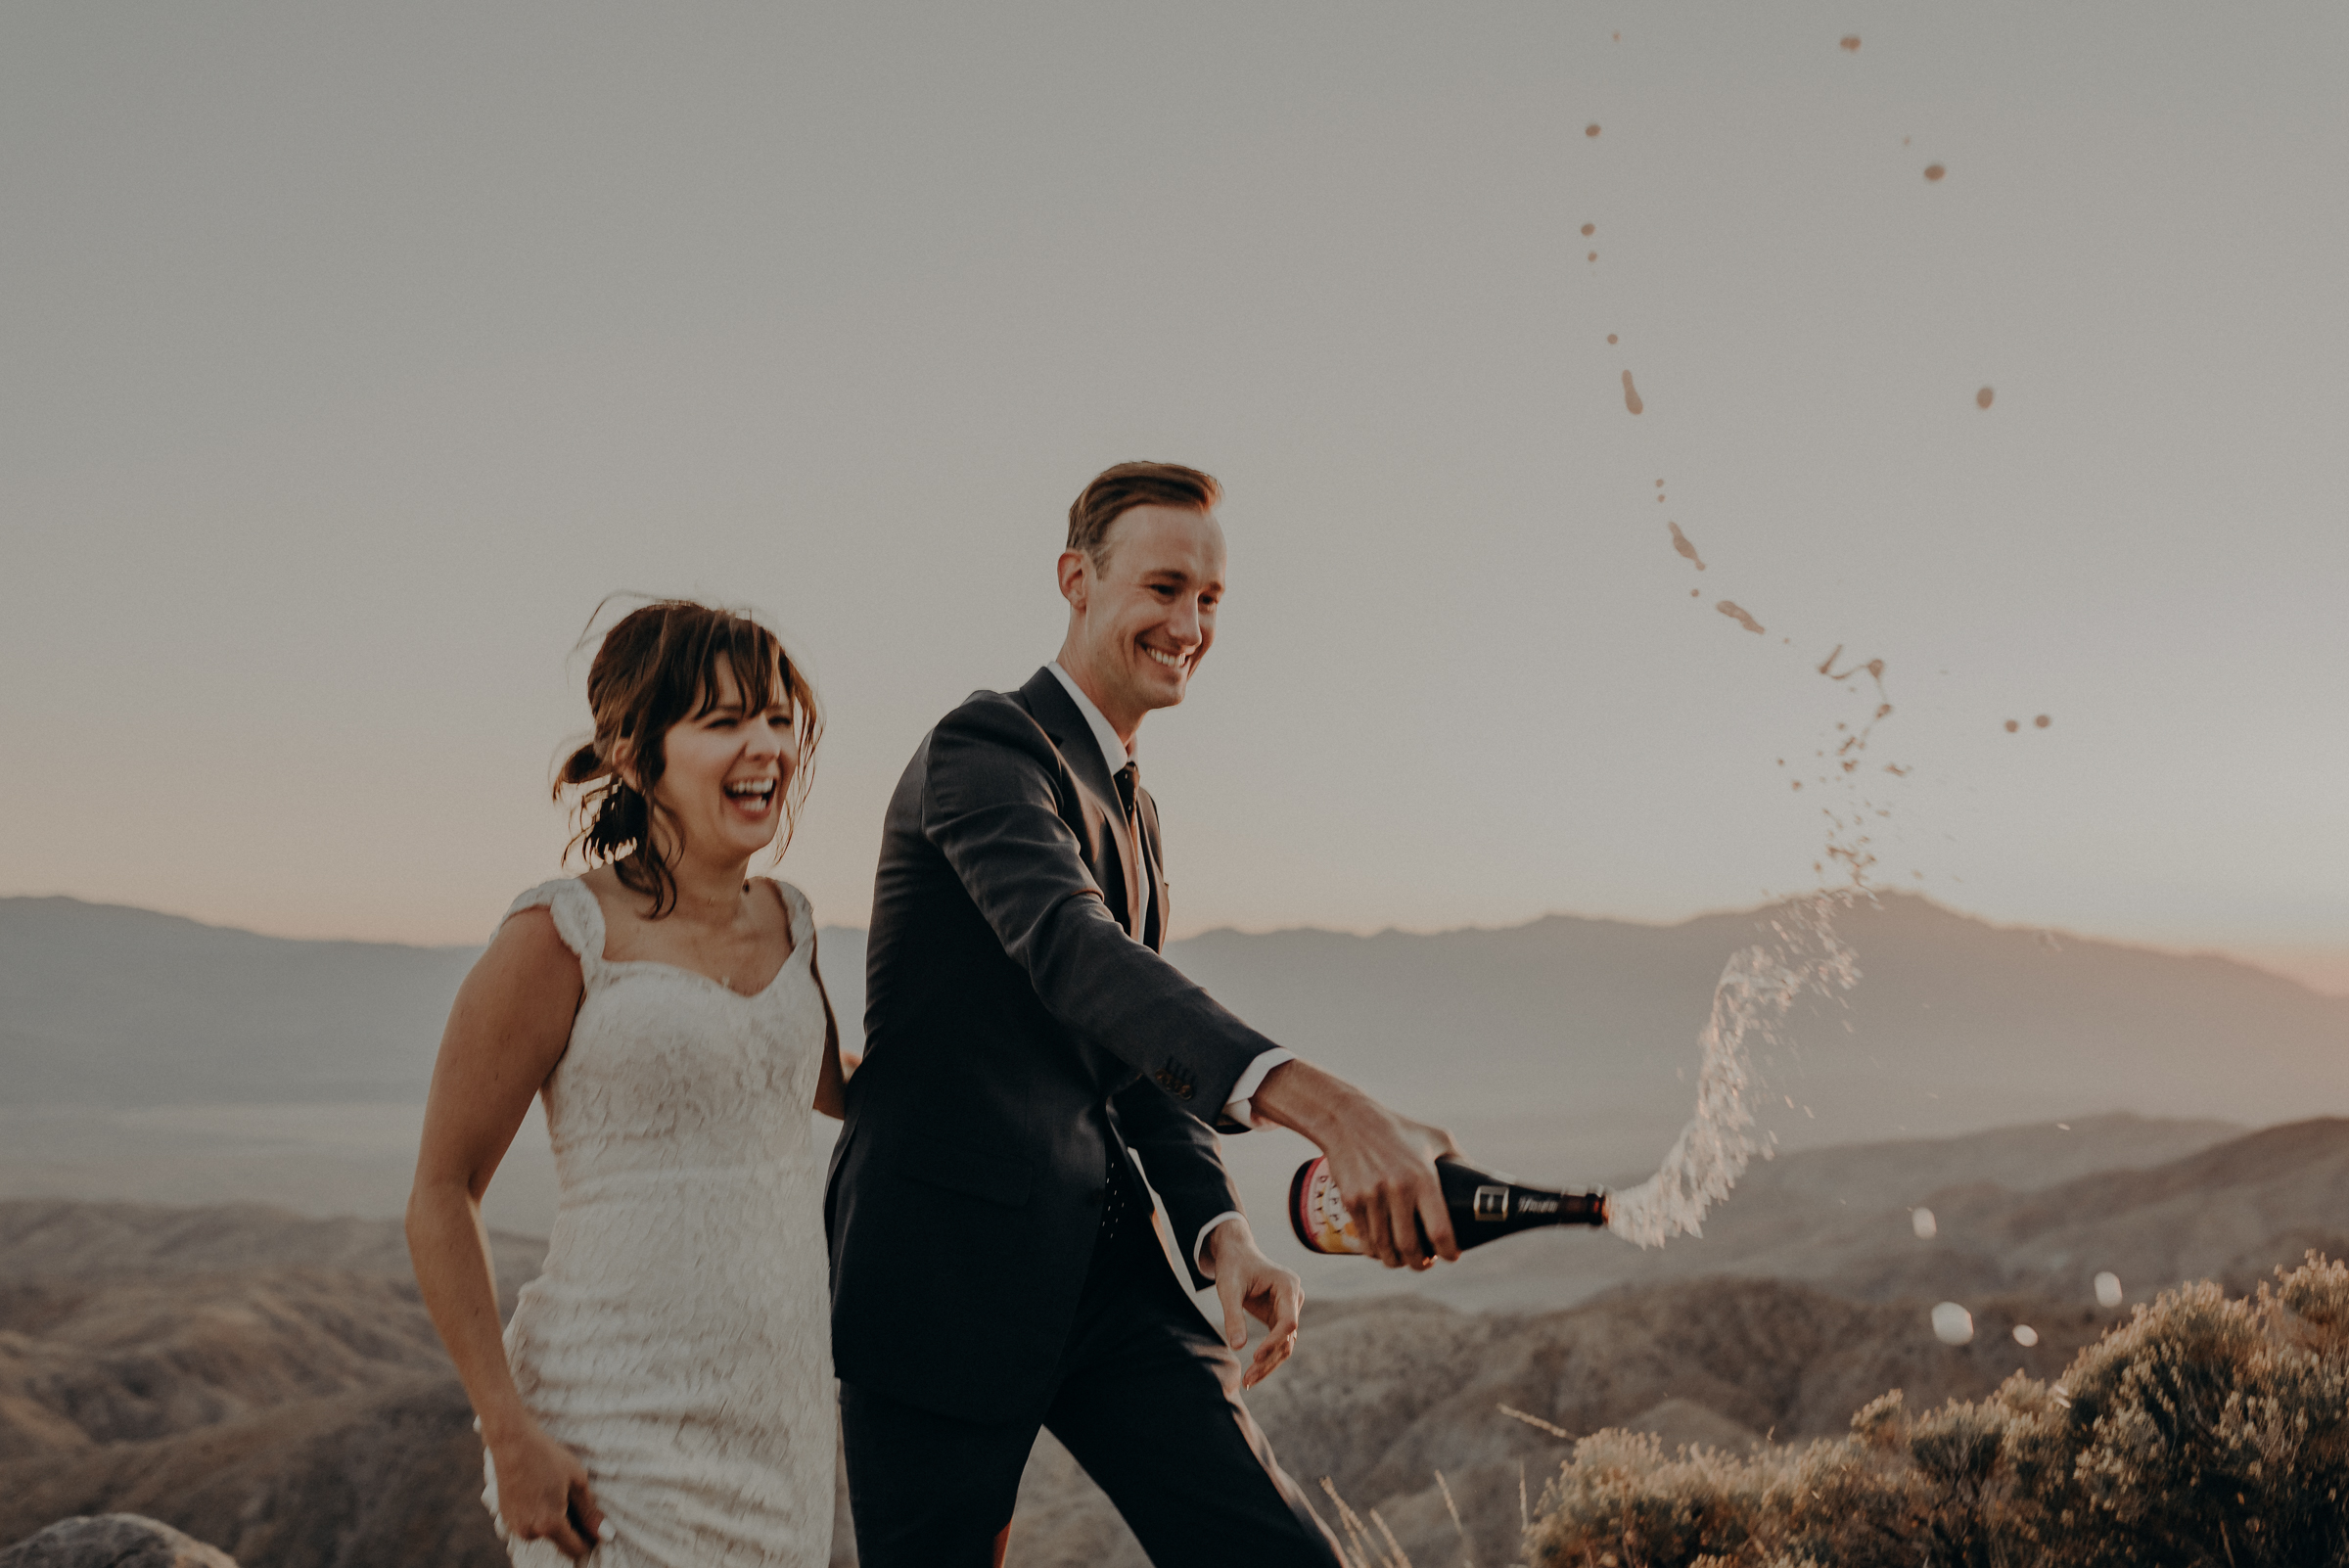 Joshua Tree Elopement - Los Angeles Wedding Photographers - IsaiahAndTaylor.com-117.jpg